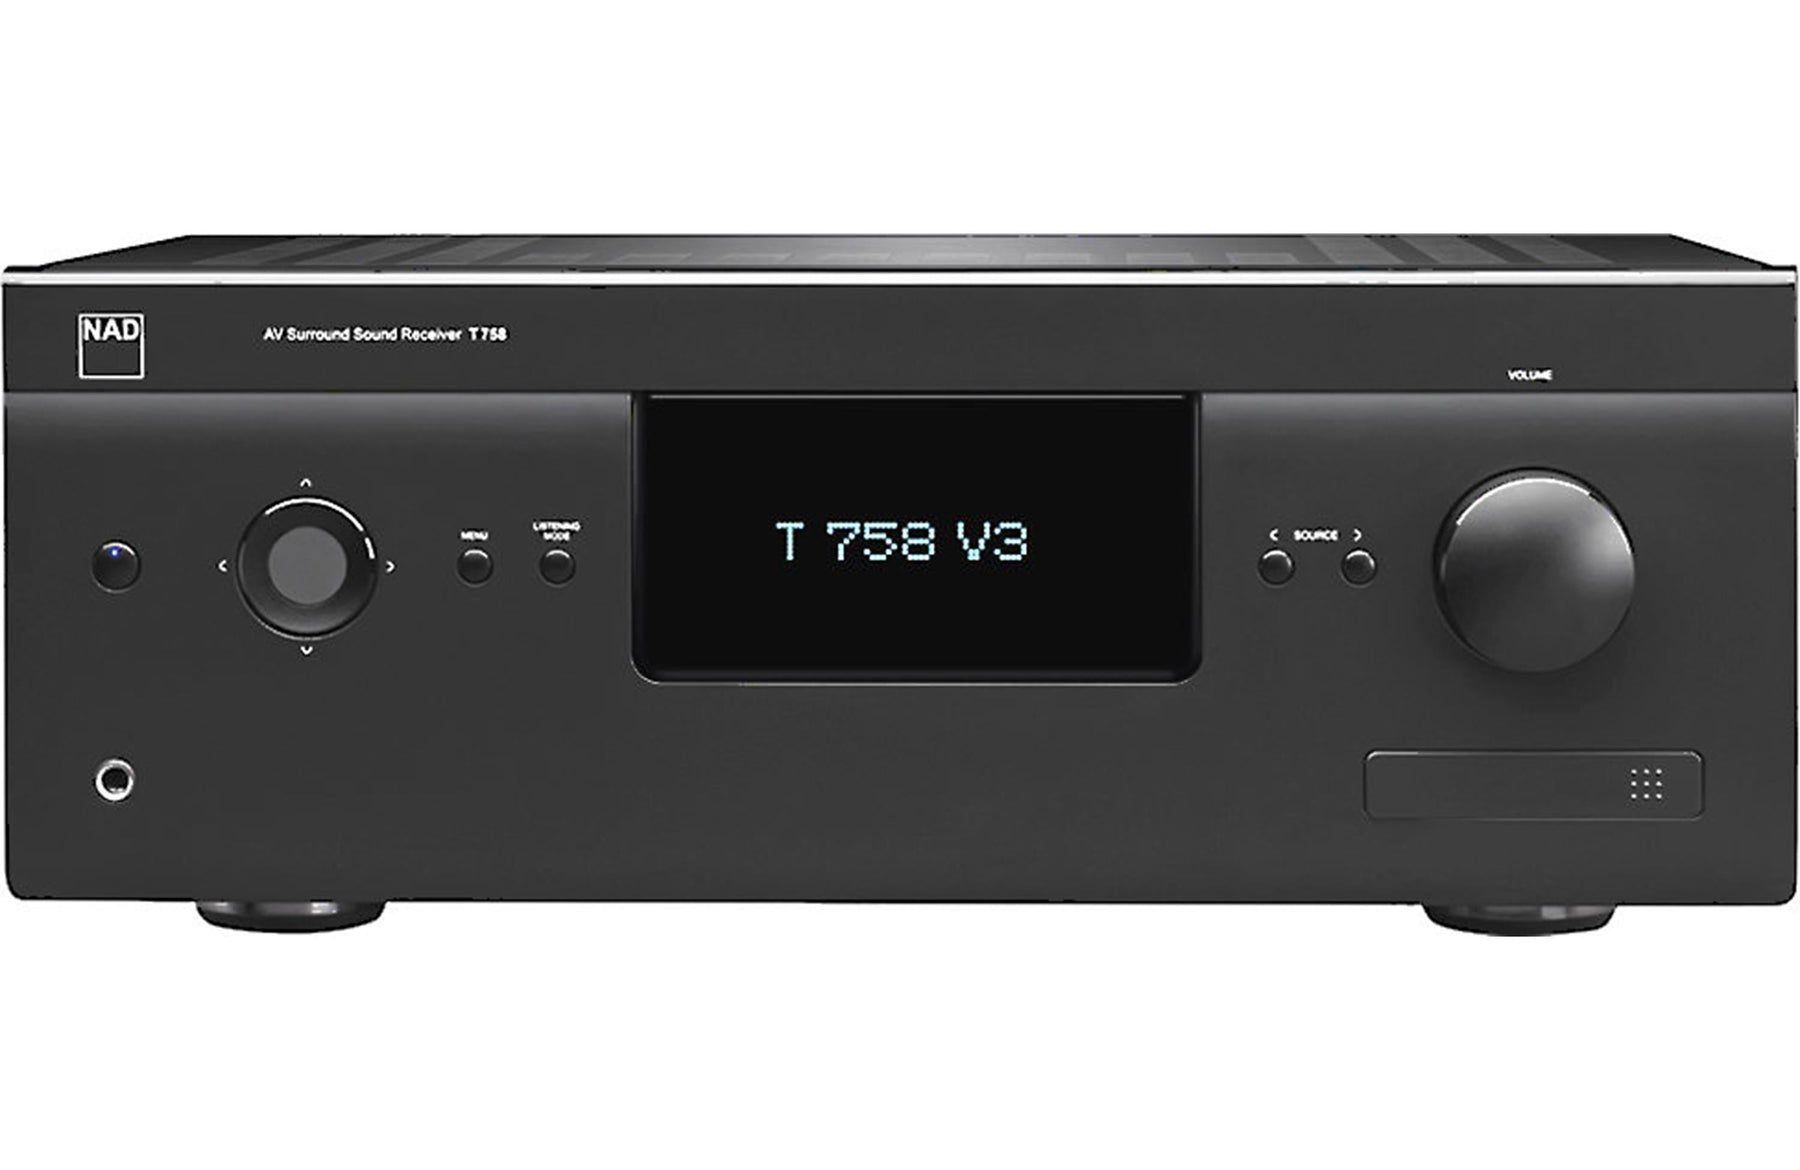 NAD Electronics T 758 V3 7.2 Channel A/V Surround Sound Receiver Open Box - Safe and Sound HQ